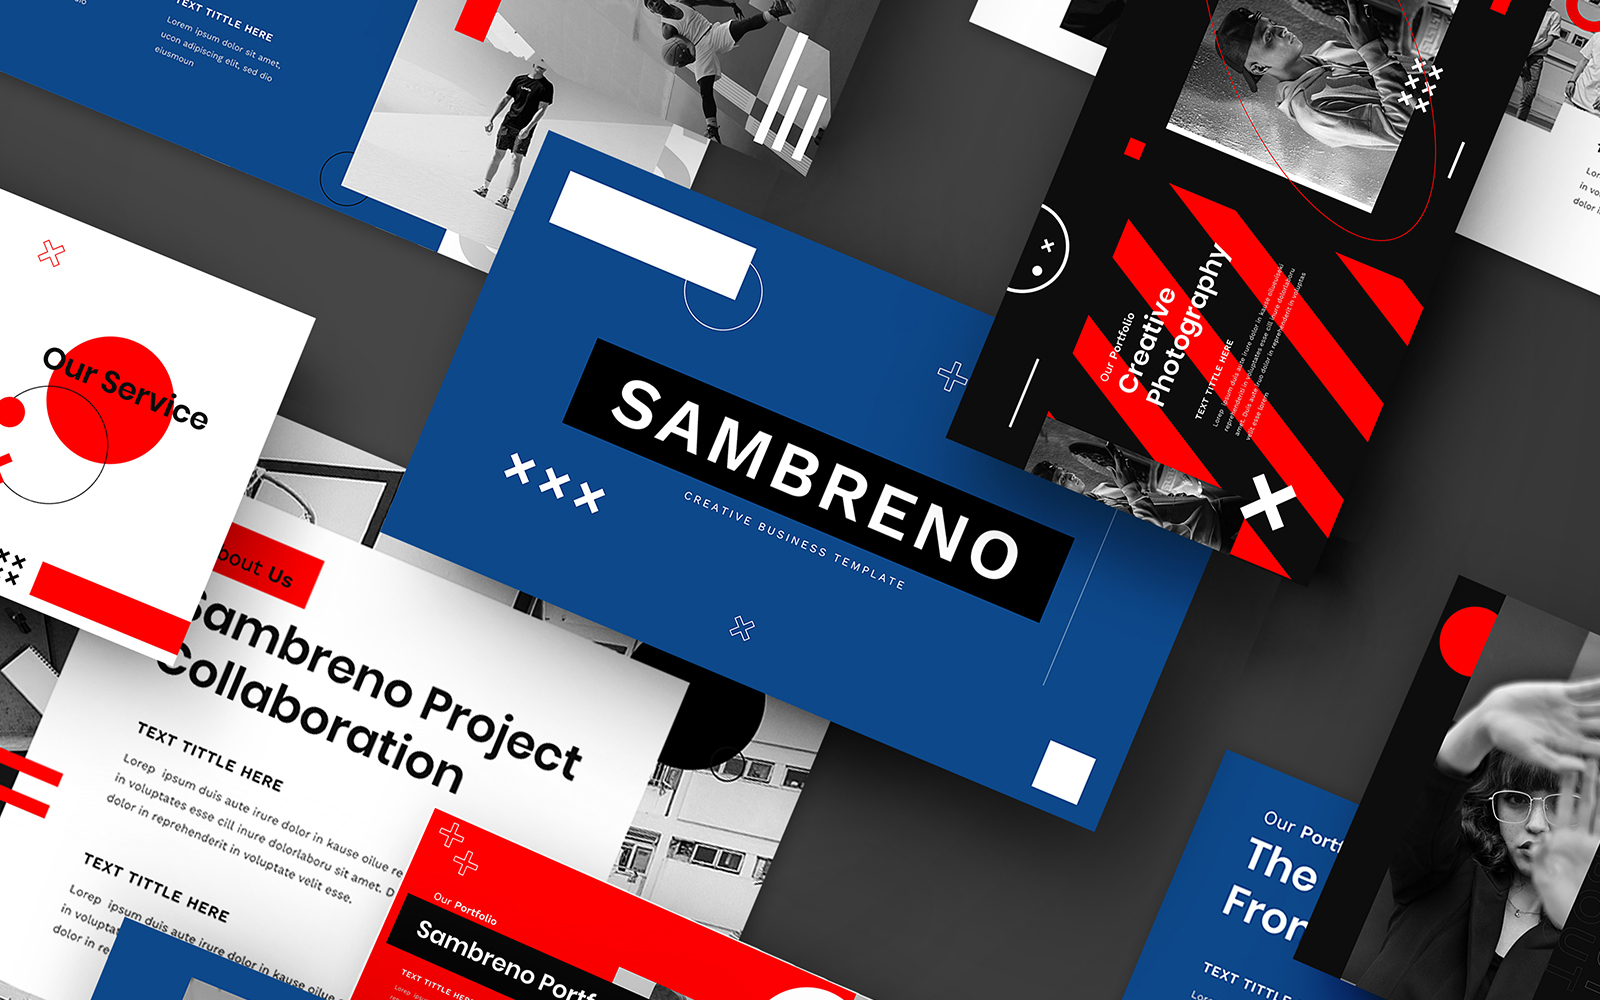 Sambreno – Creative Business PowerPoint Template